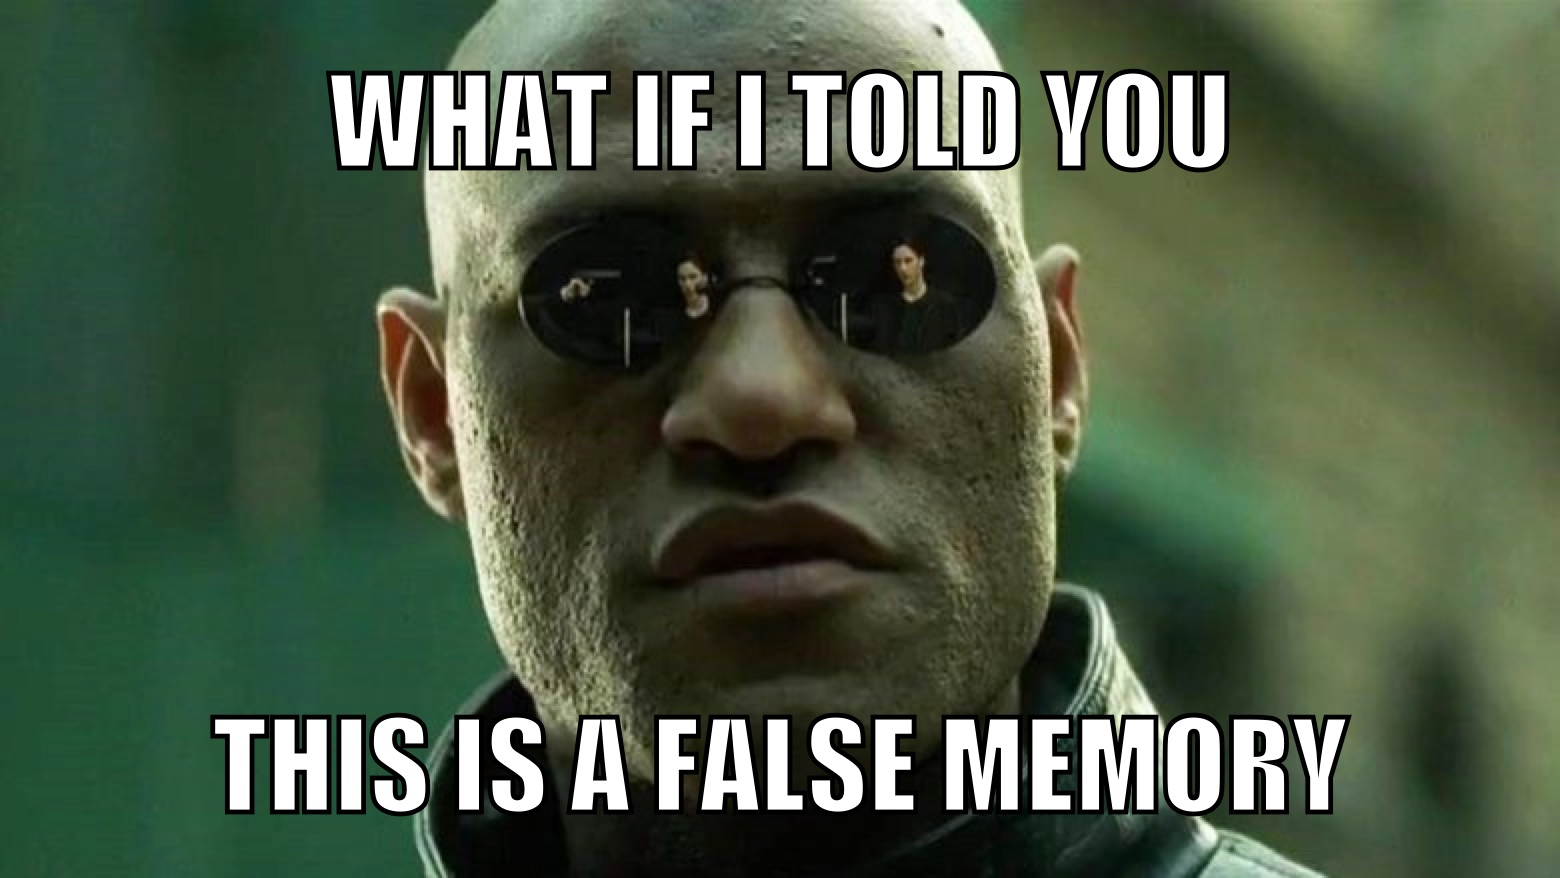 What if I told you this is a false memory